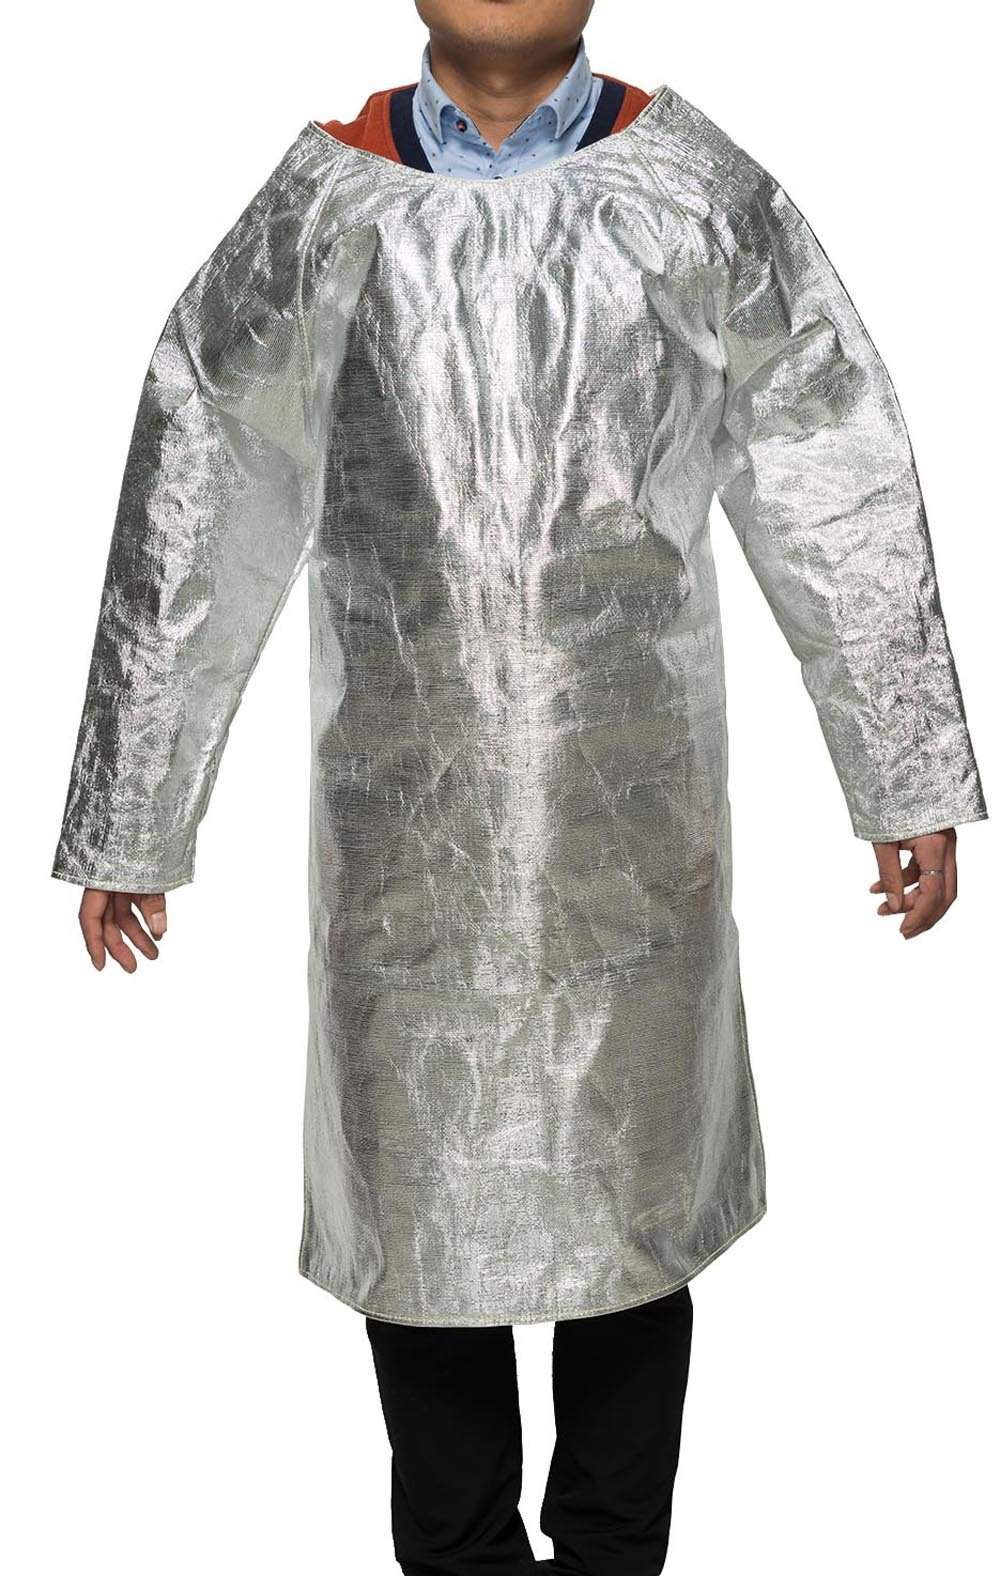 Welding Apron Aluminized Heat Resistant Apron Protective Coat Safety Suit Safety Apparel Flame Resistant Safety Lab Apron Welding Gown